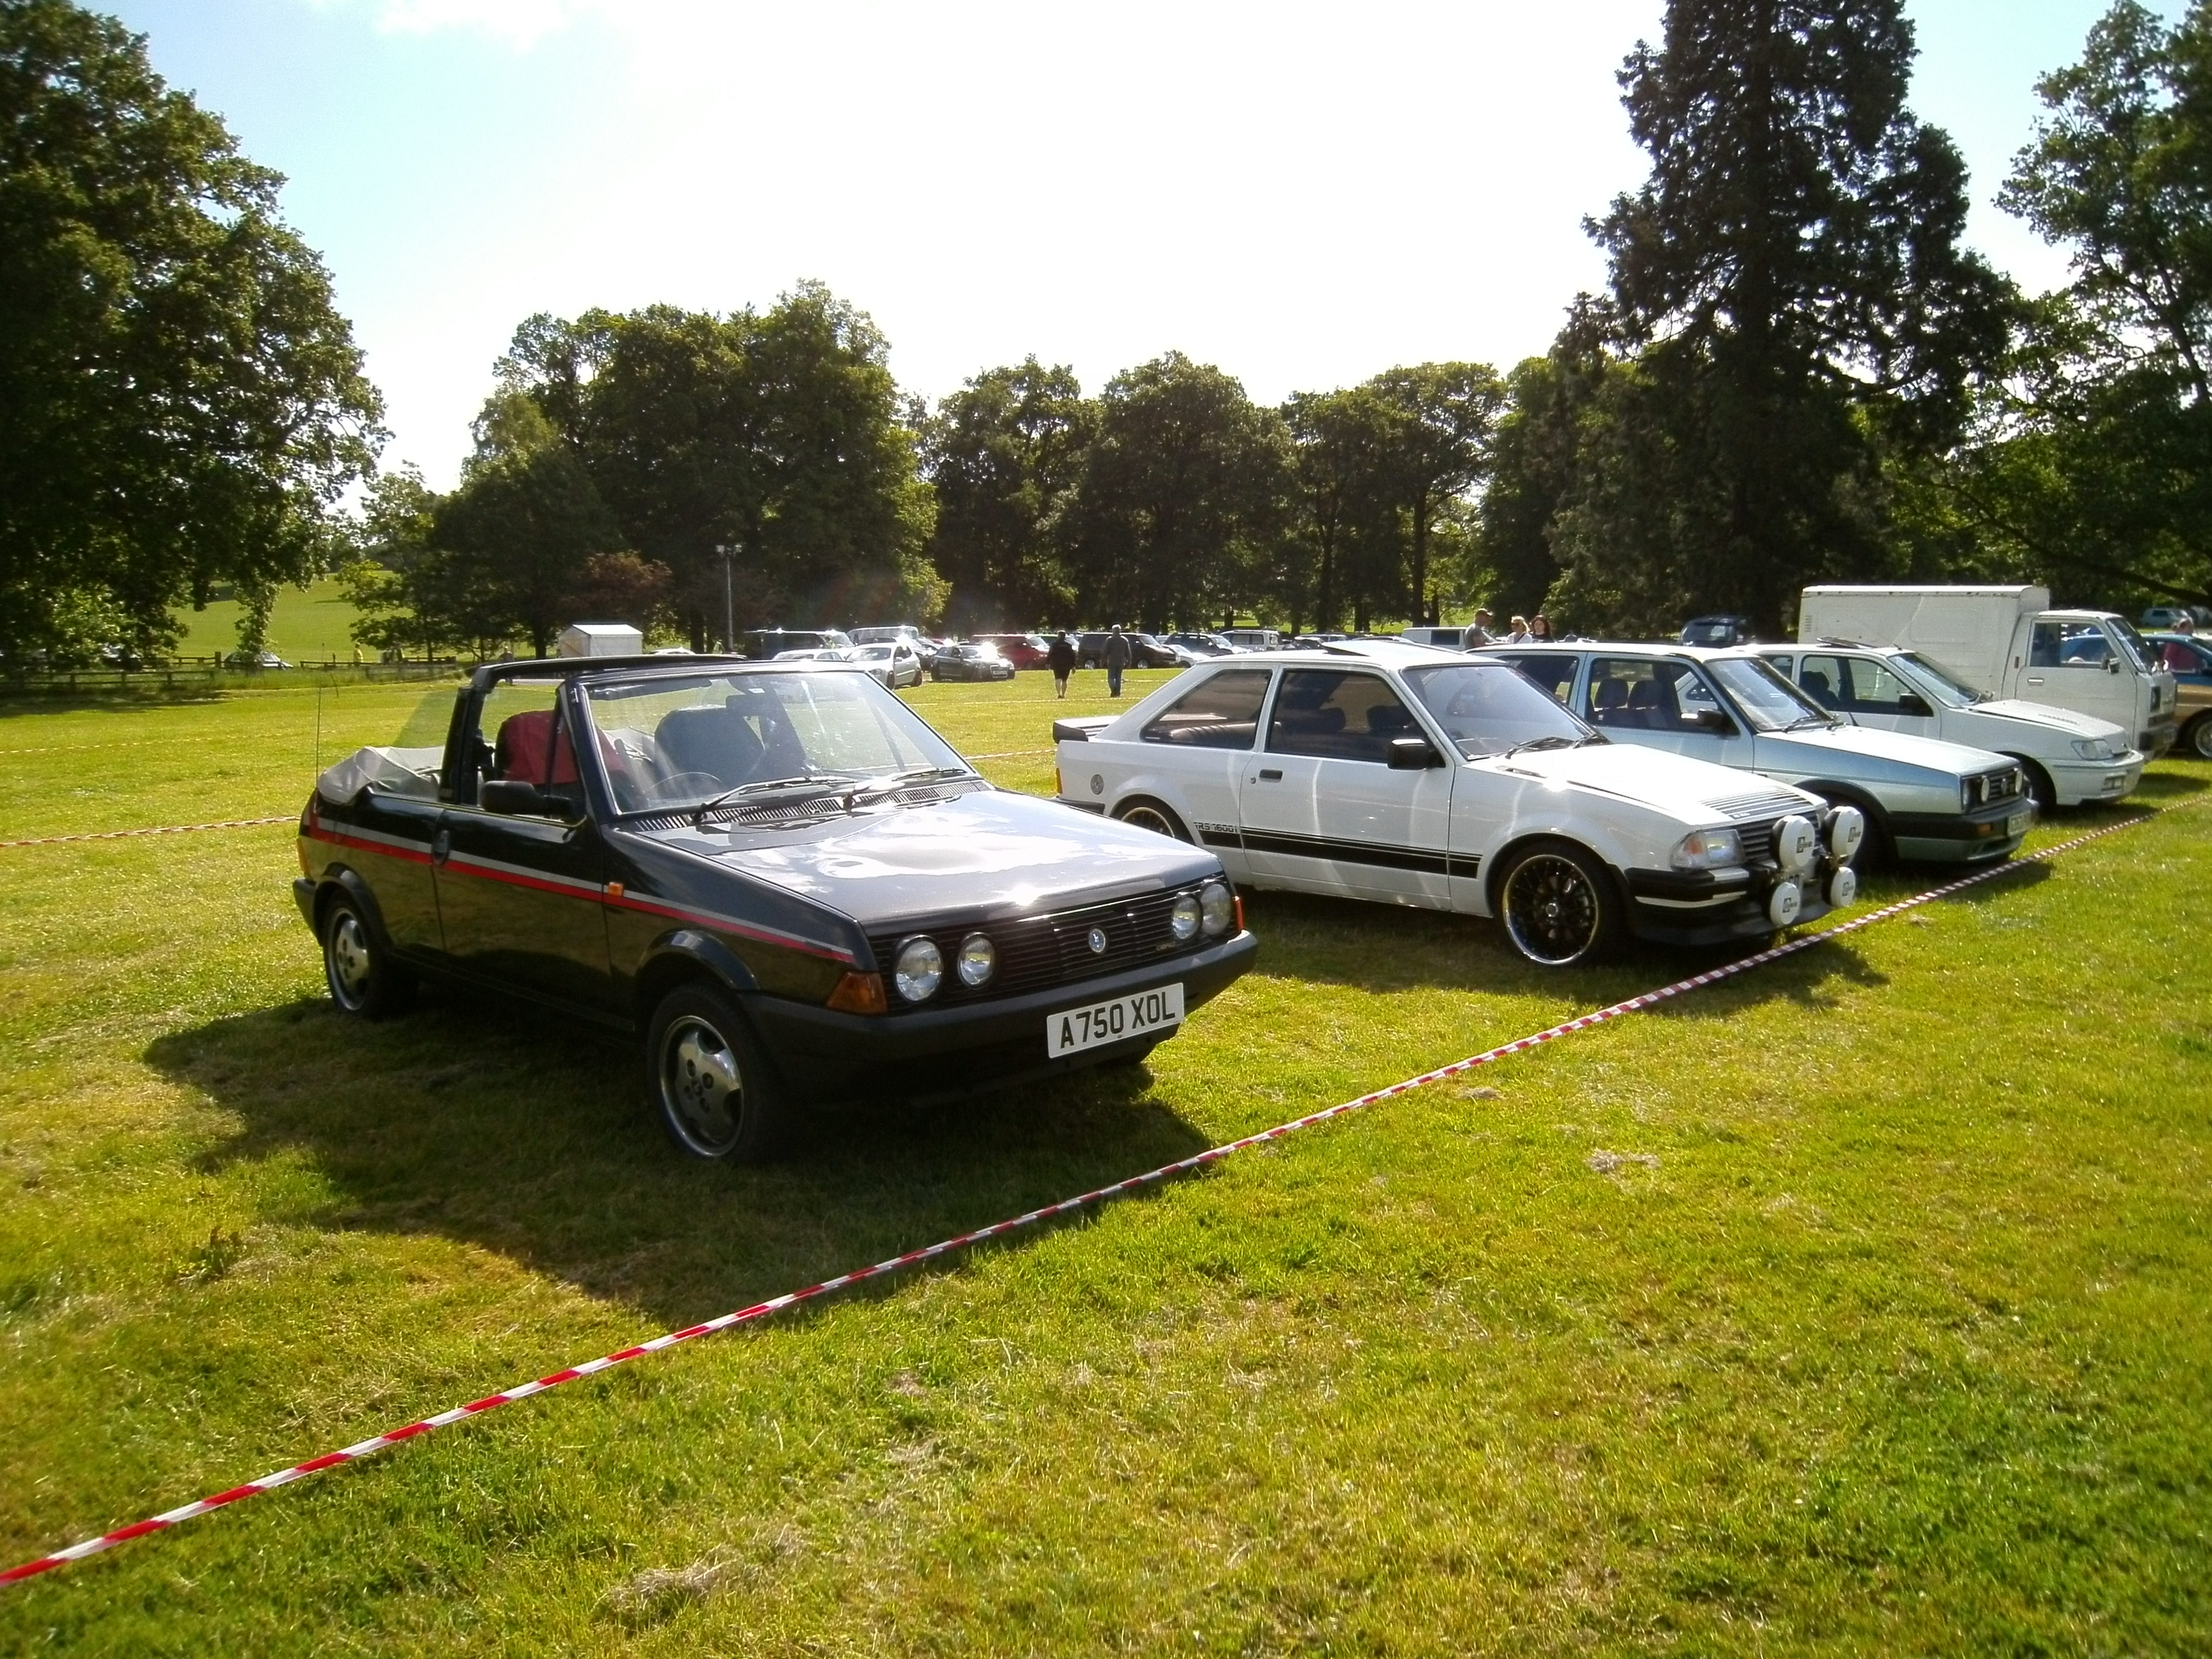 Click image for larger version  Name:!st Show Weston.JPG Views:40 Size:2.28 MB ID:156289